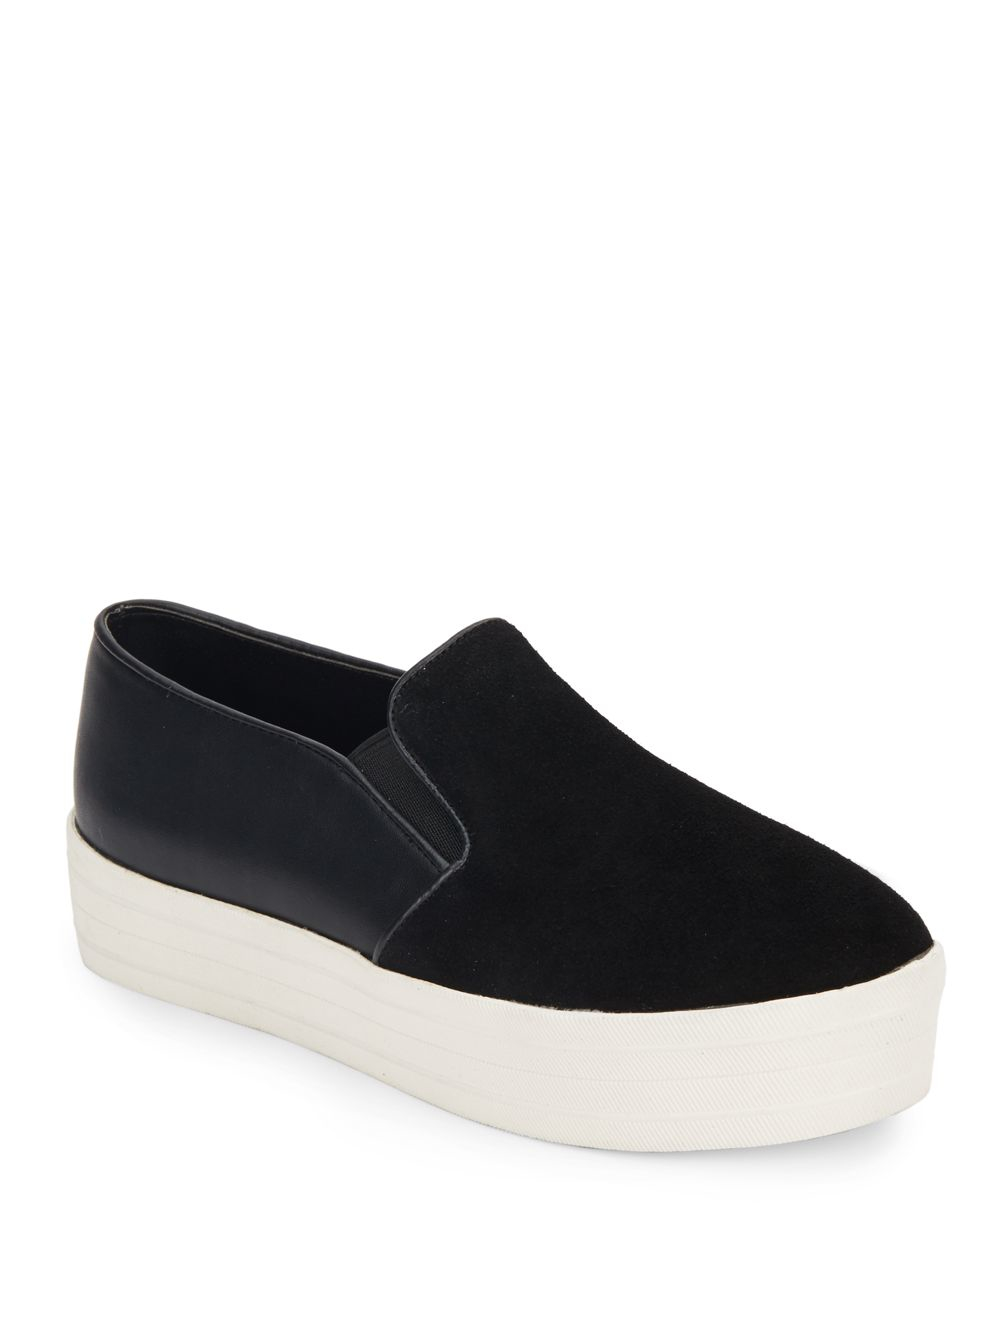 bd58f239402 Steve Madden Black Buhba Suede & Patent Slip-on Sneakers